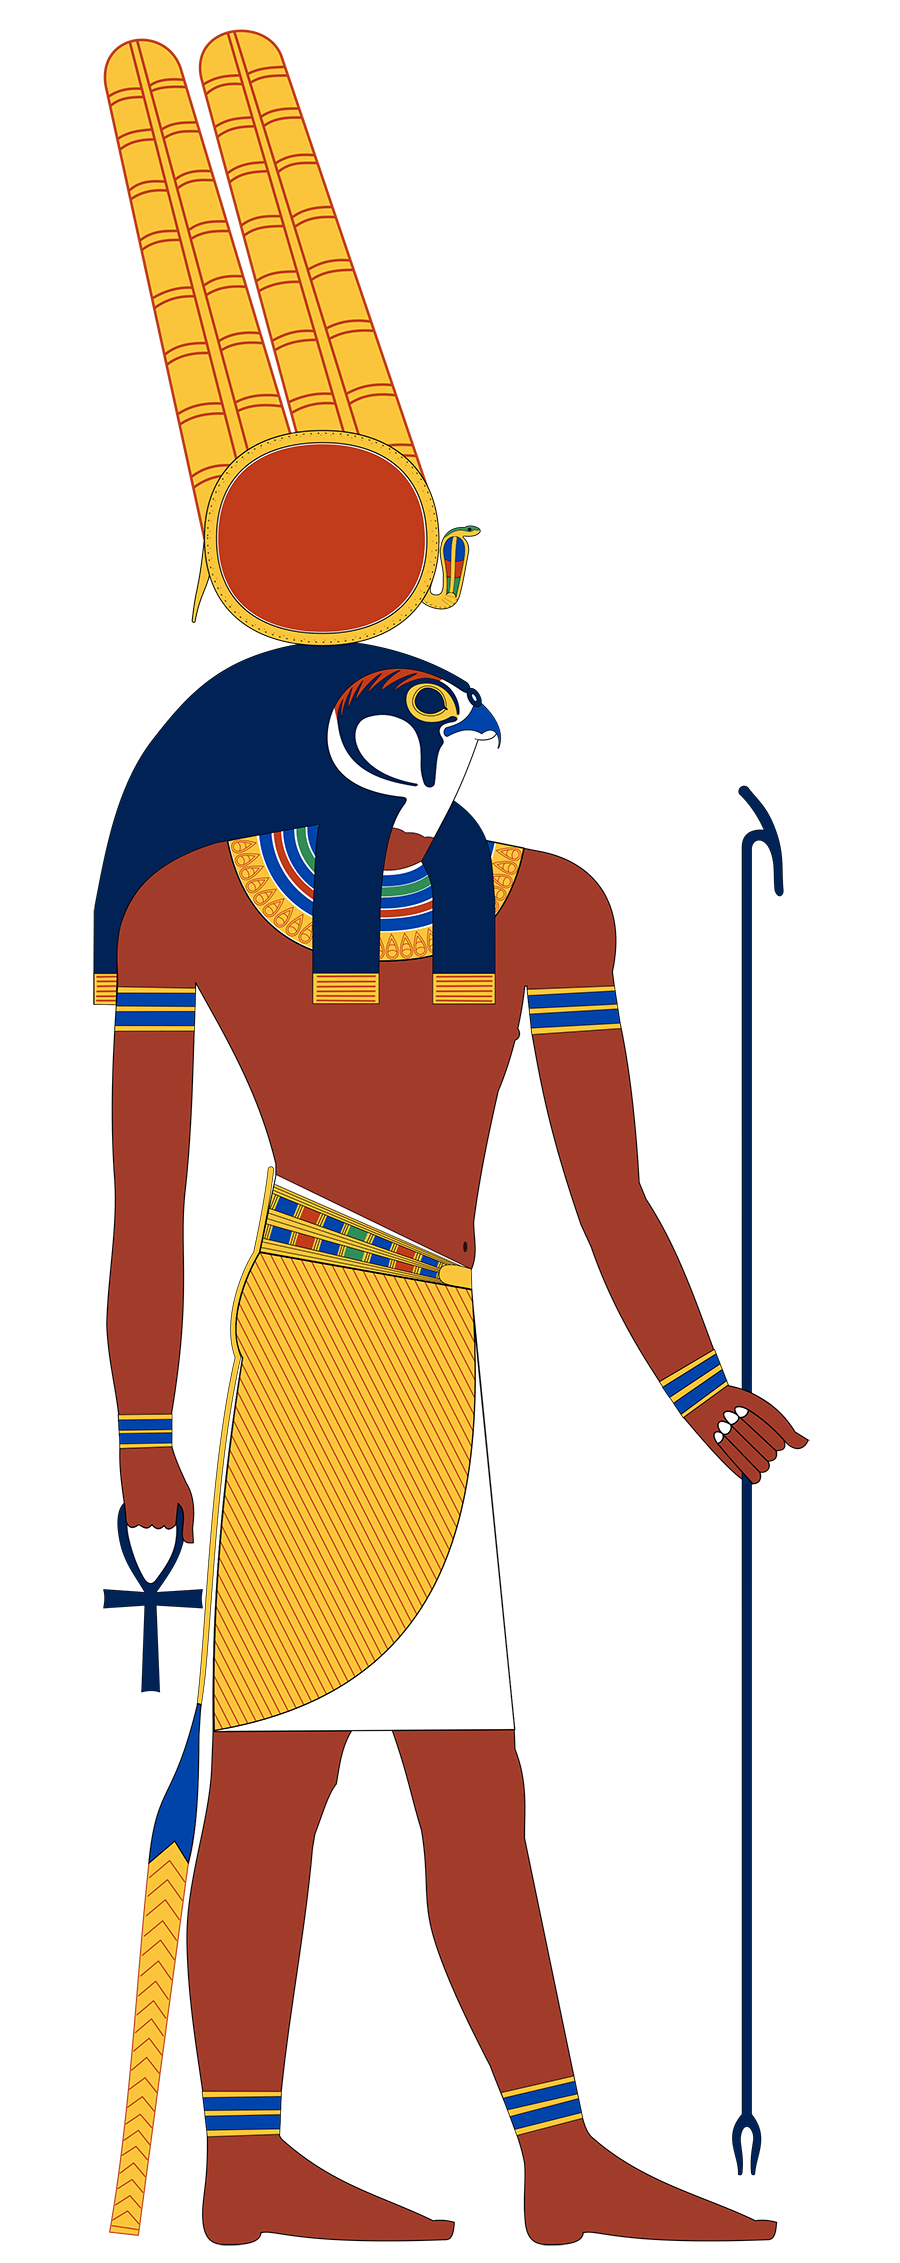 Egyptian war god Montu